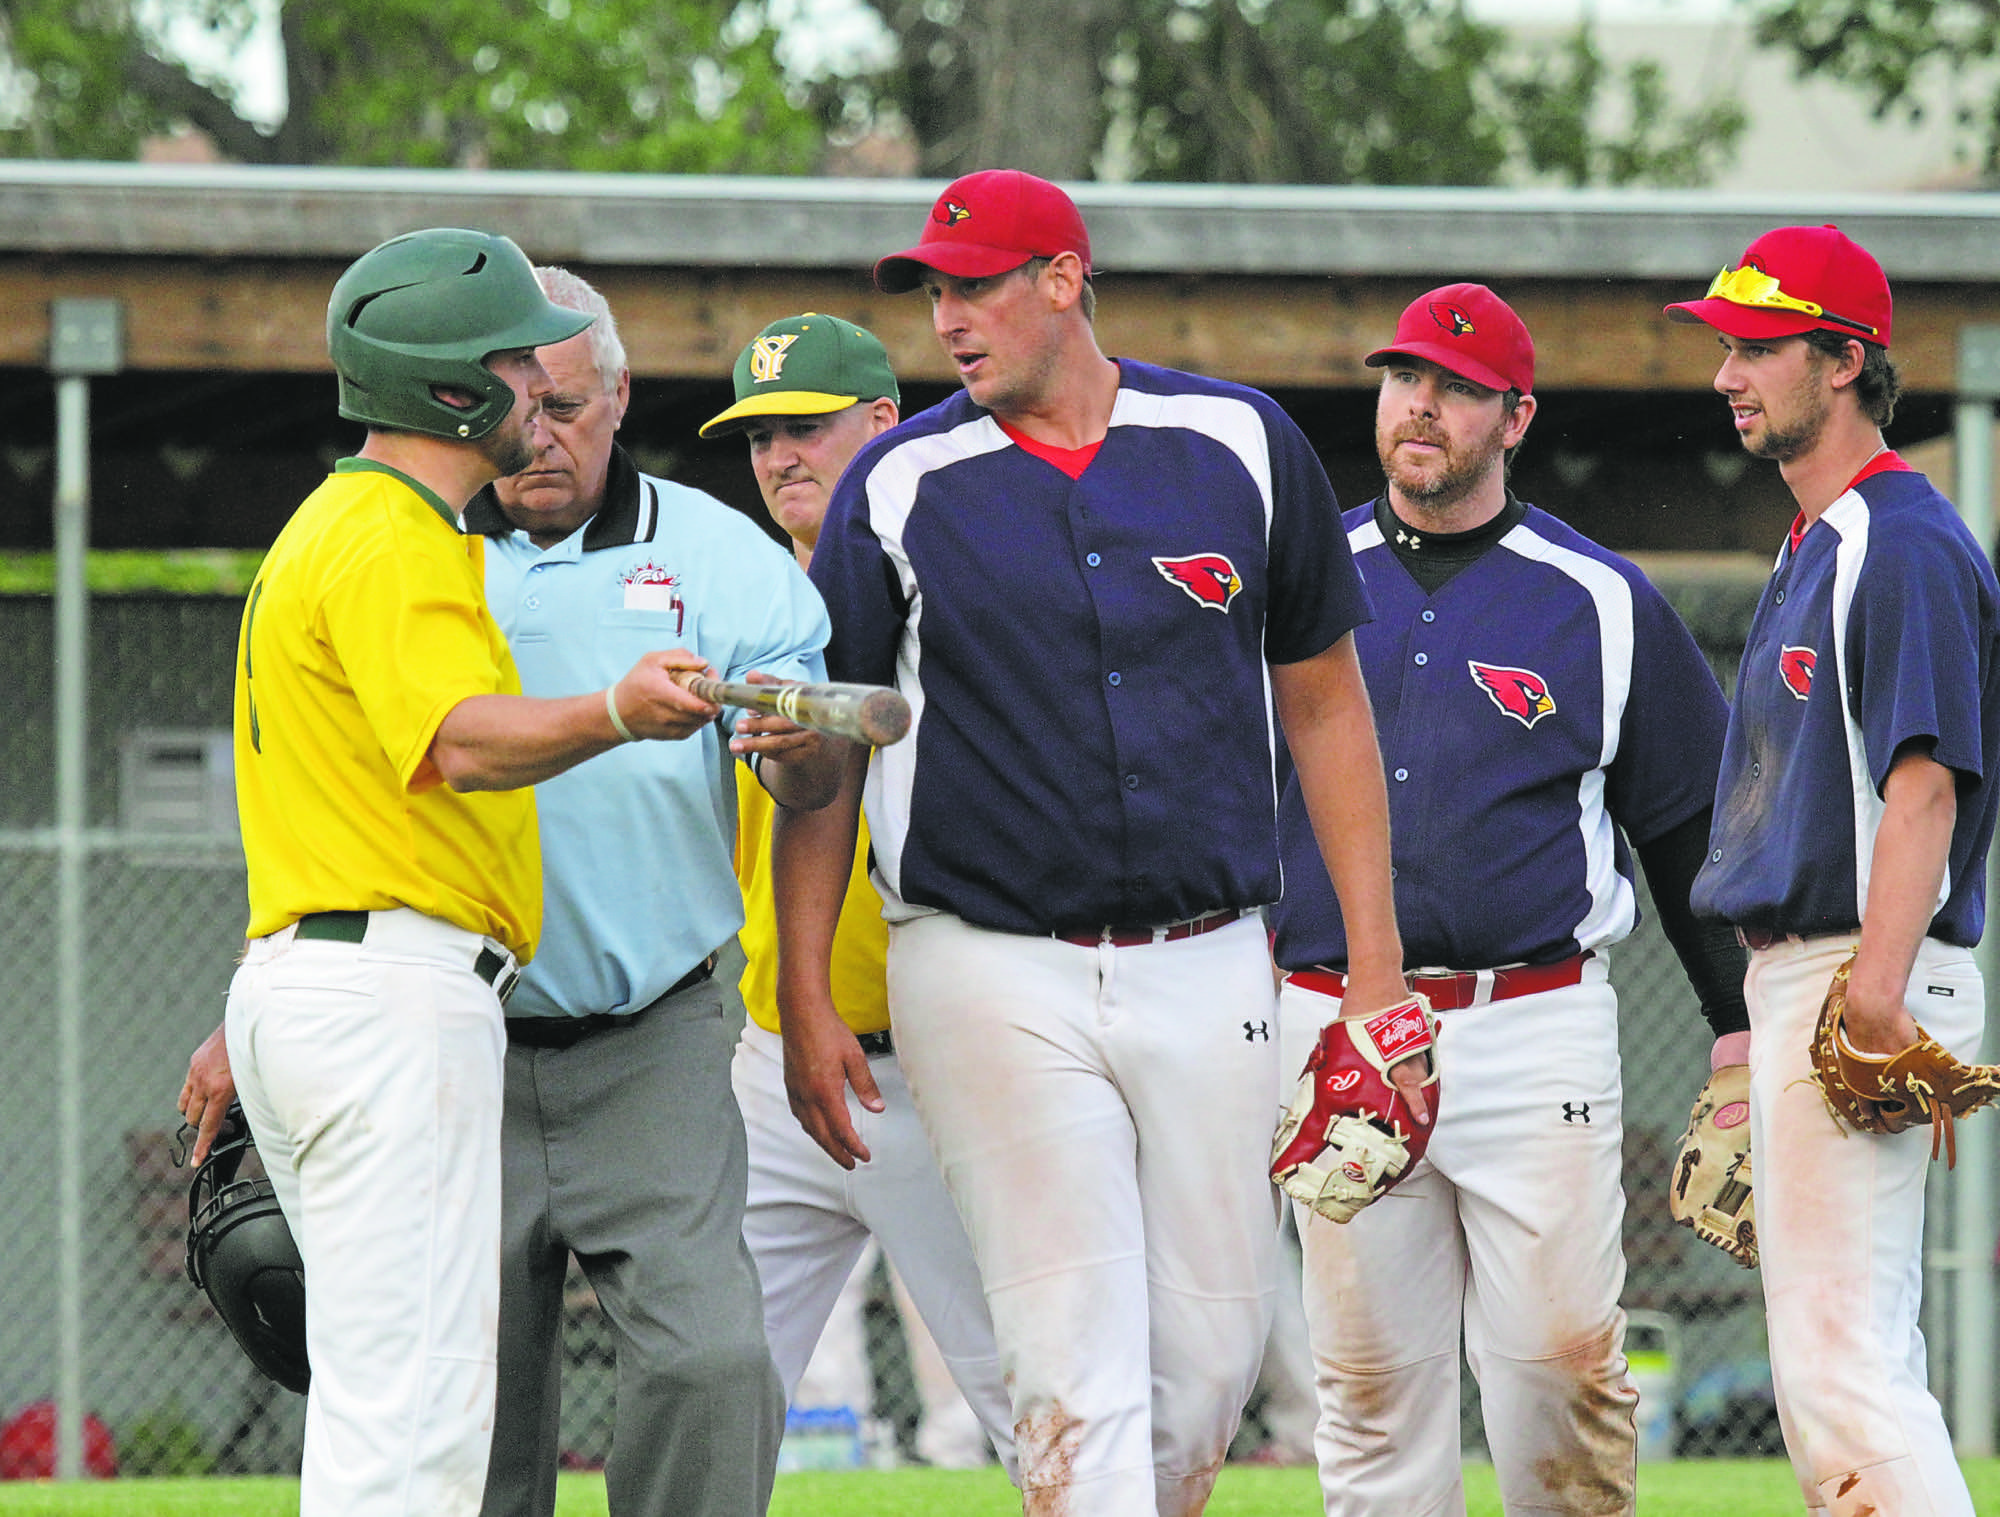 RFNOW Cardinals pitcher Adam Hartman and GW Vacuum Truck Service Young Guns Brandon Lockerby exchange words while Cardinals Joel Krentz and Max Paddock look on, after Lockerby collided with Hartman on a pop-up down the first-base line. Lockerby was called out for interference and the Cards went on to take Game 1 of the Andrew Agencies Senior AA Baseball League final 4-3 at Sumner Field on Tuesday. (Thomas Friesen/The Brandon Sun)